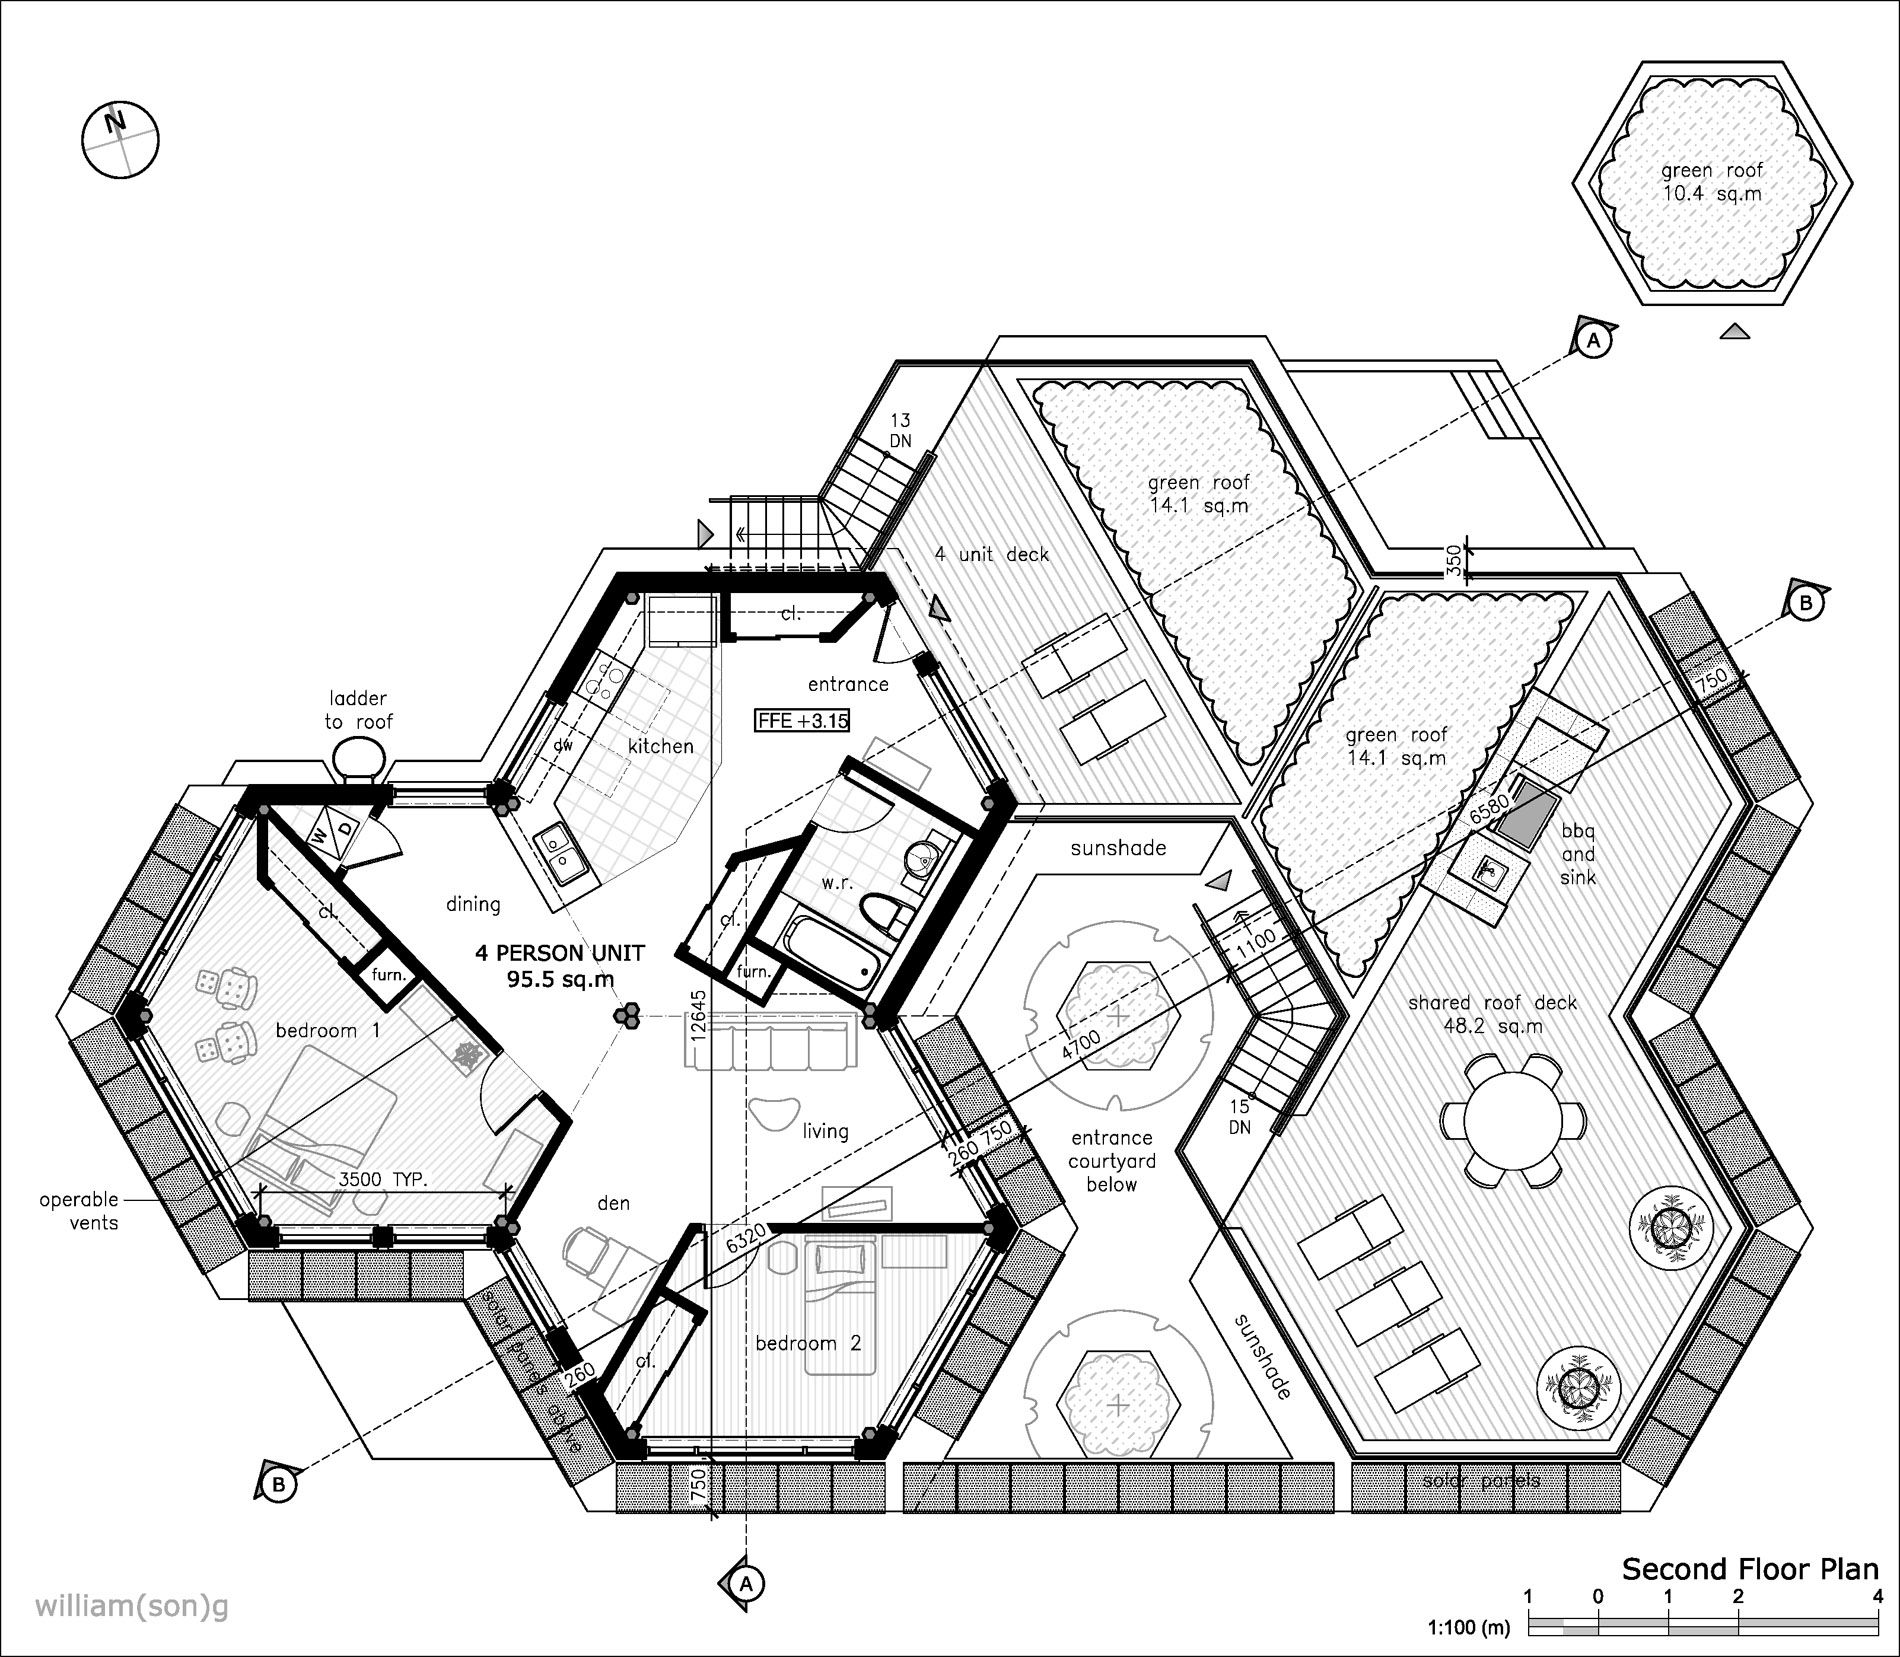 Hexagon house plans willian son g buscar con google for Pre drawn house plans